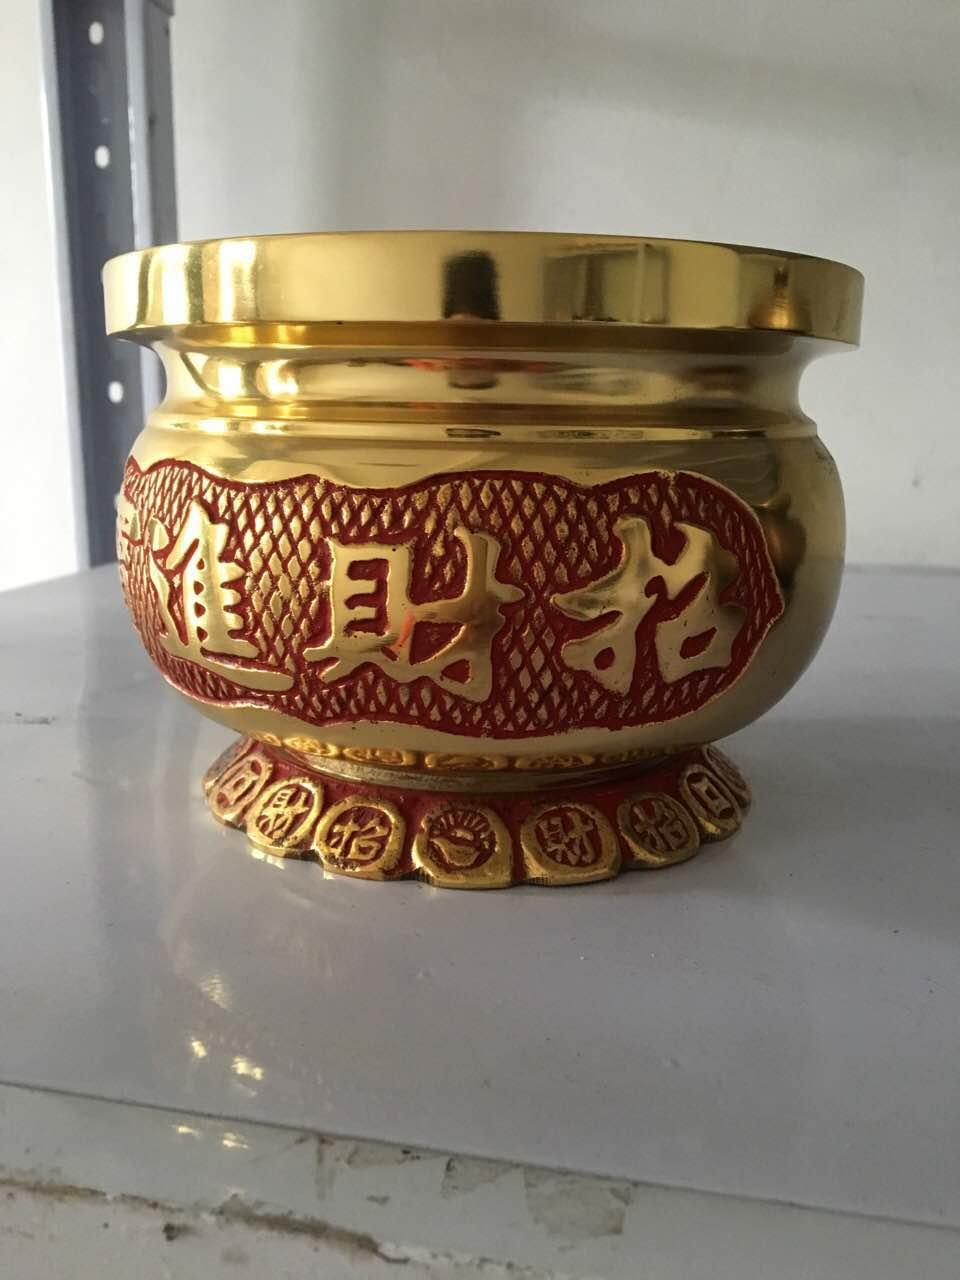 Incense burner copper castings